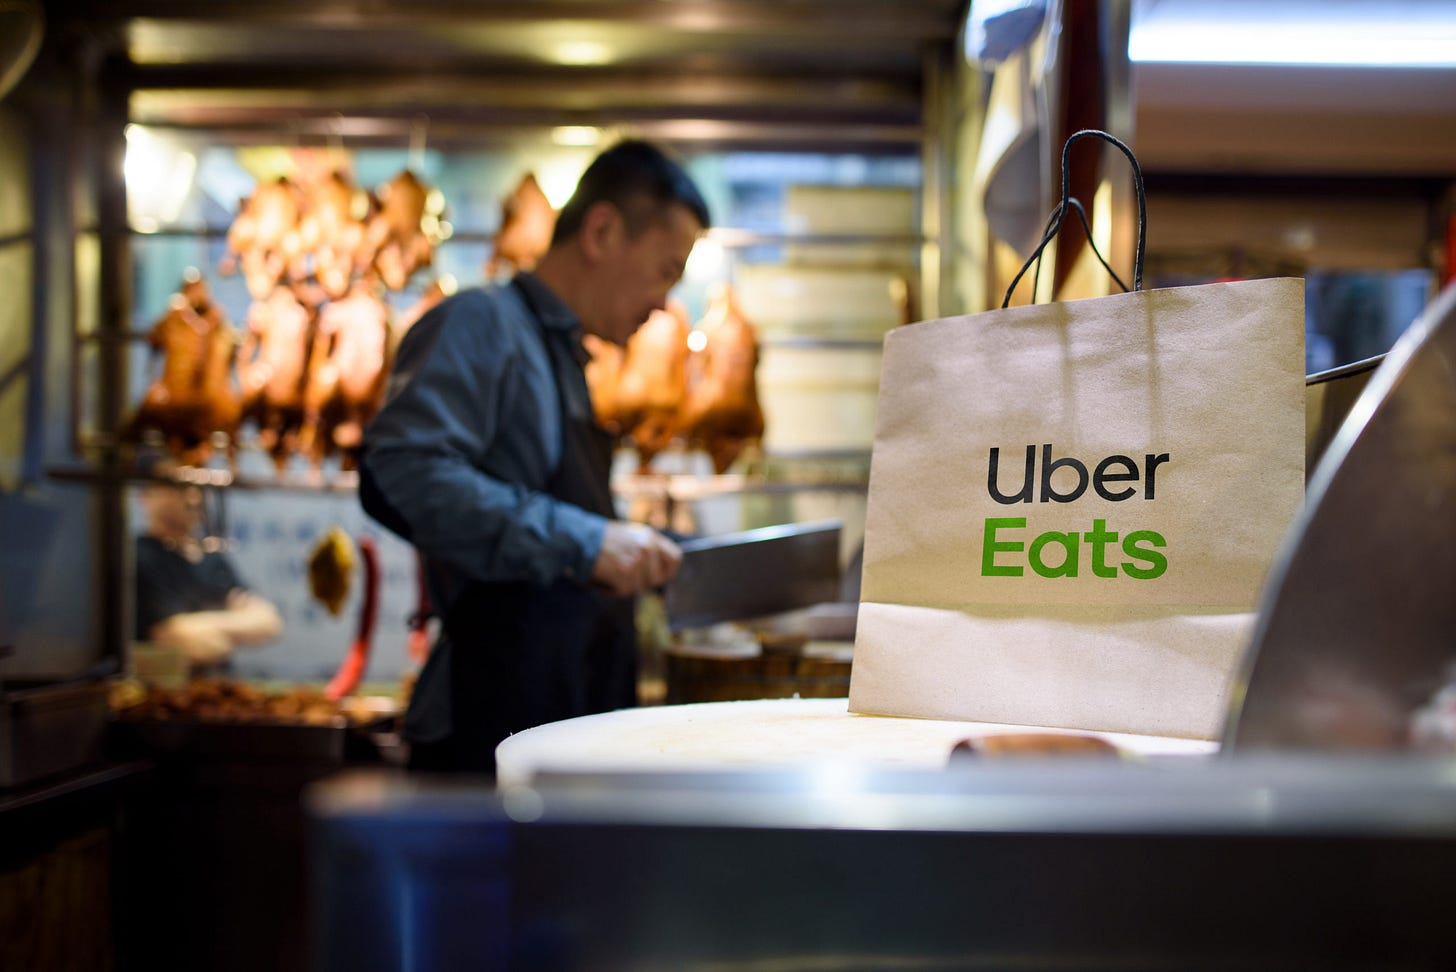 Uber Eats Using Discounts and Ad Space to Entice More Restaurants